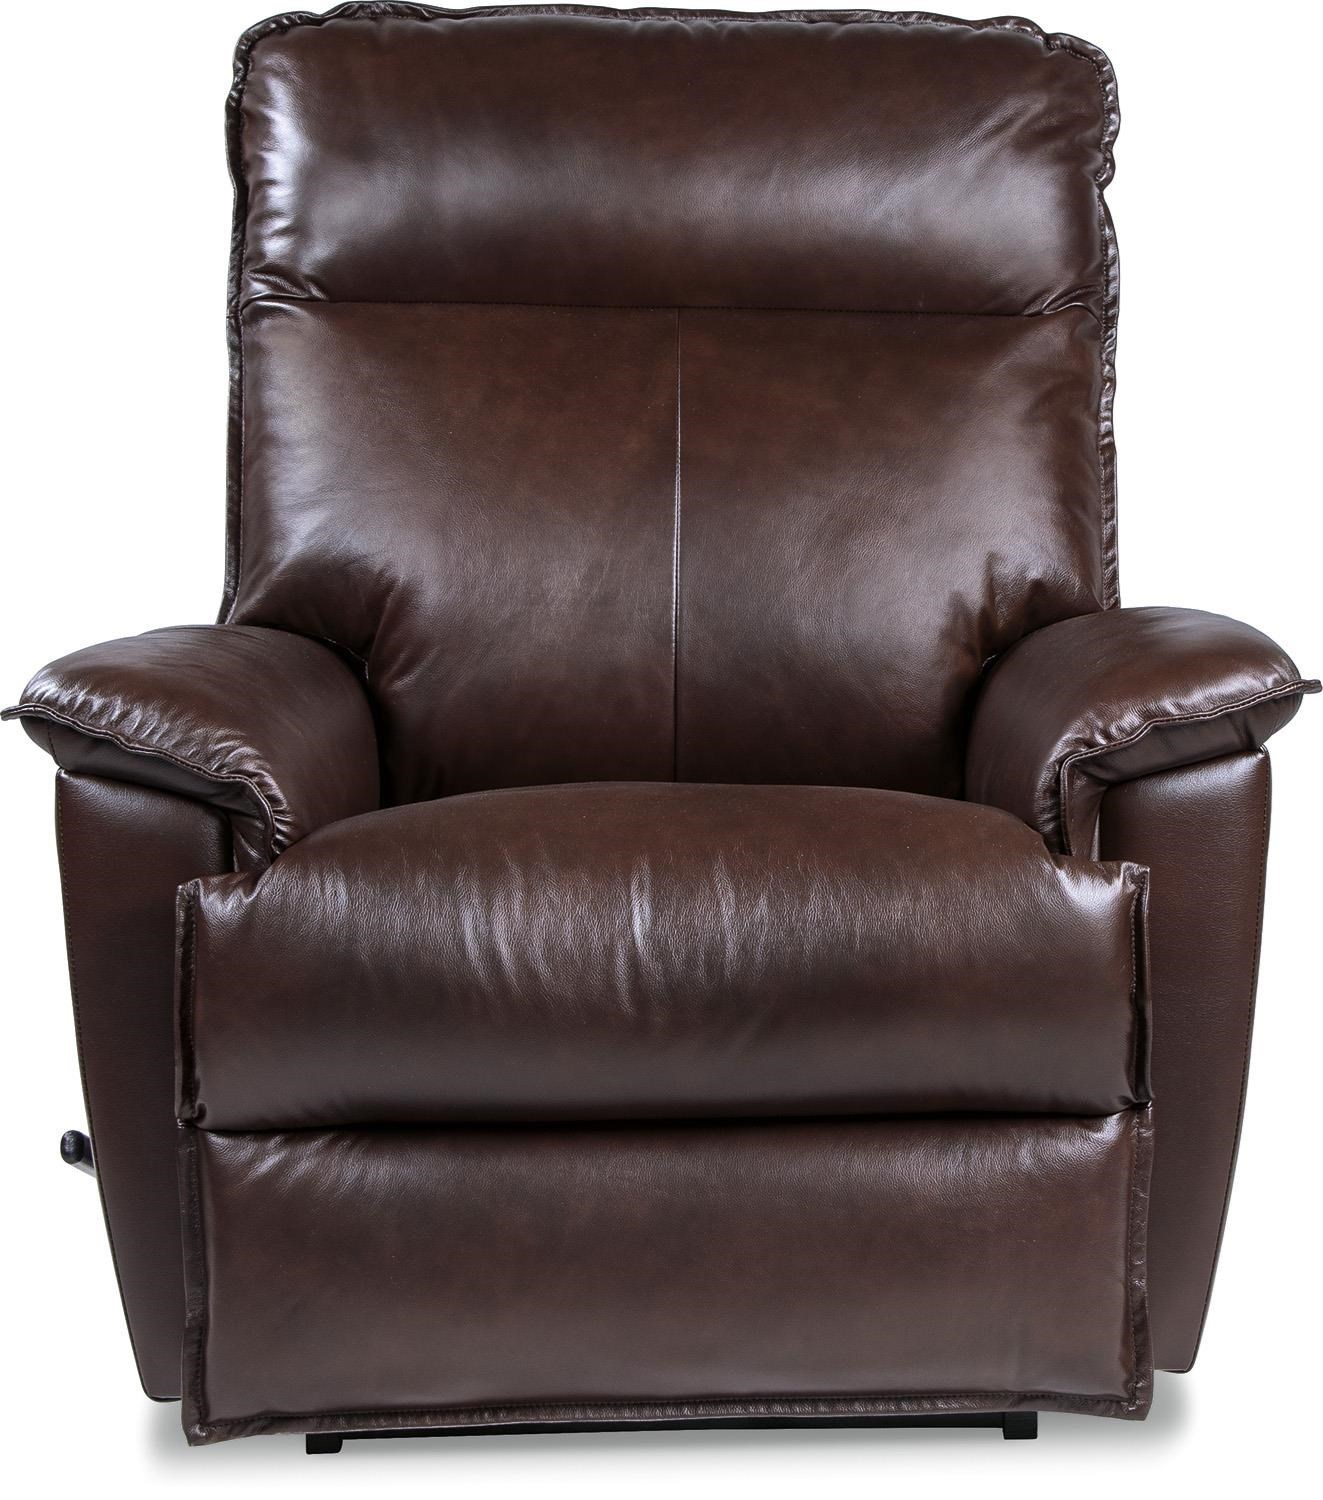 La-Z-Boy Recliners Jay Chocolate Leather Reclina-Rocker® Recliner - Great American Home Store - Three Way Recliners  sc 1 st  Great American Home Store : la z boy leather recliner - islam-shia.org